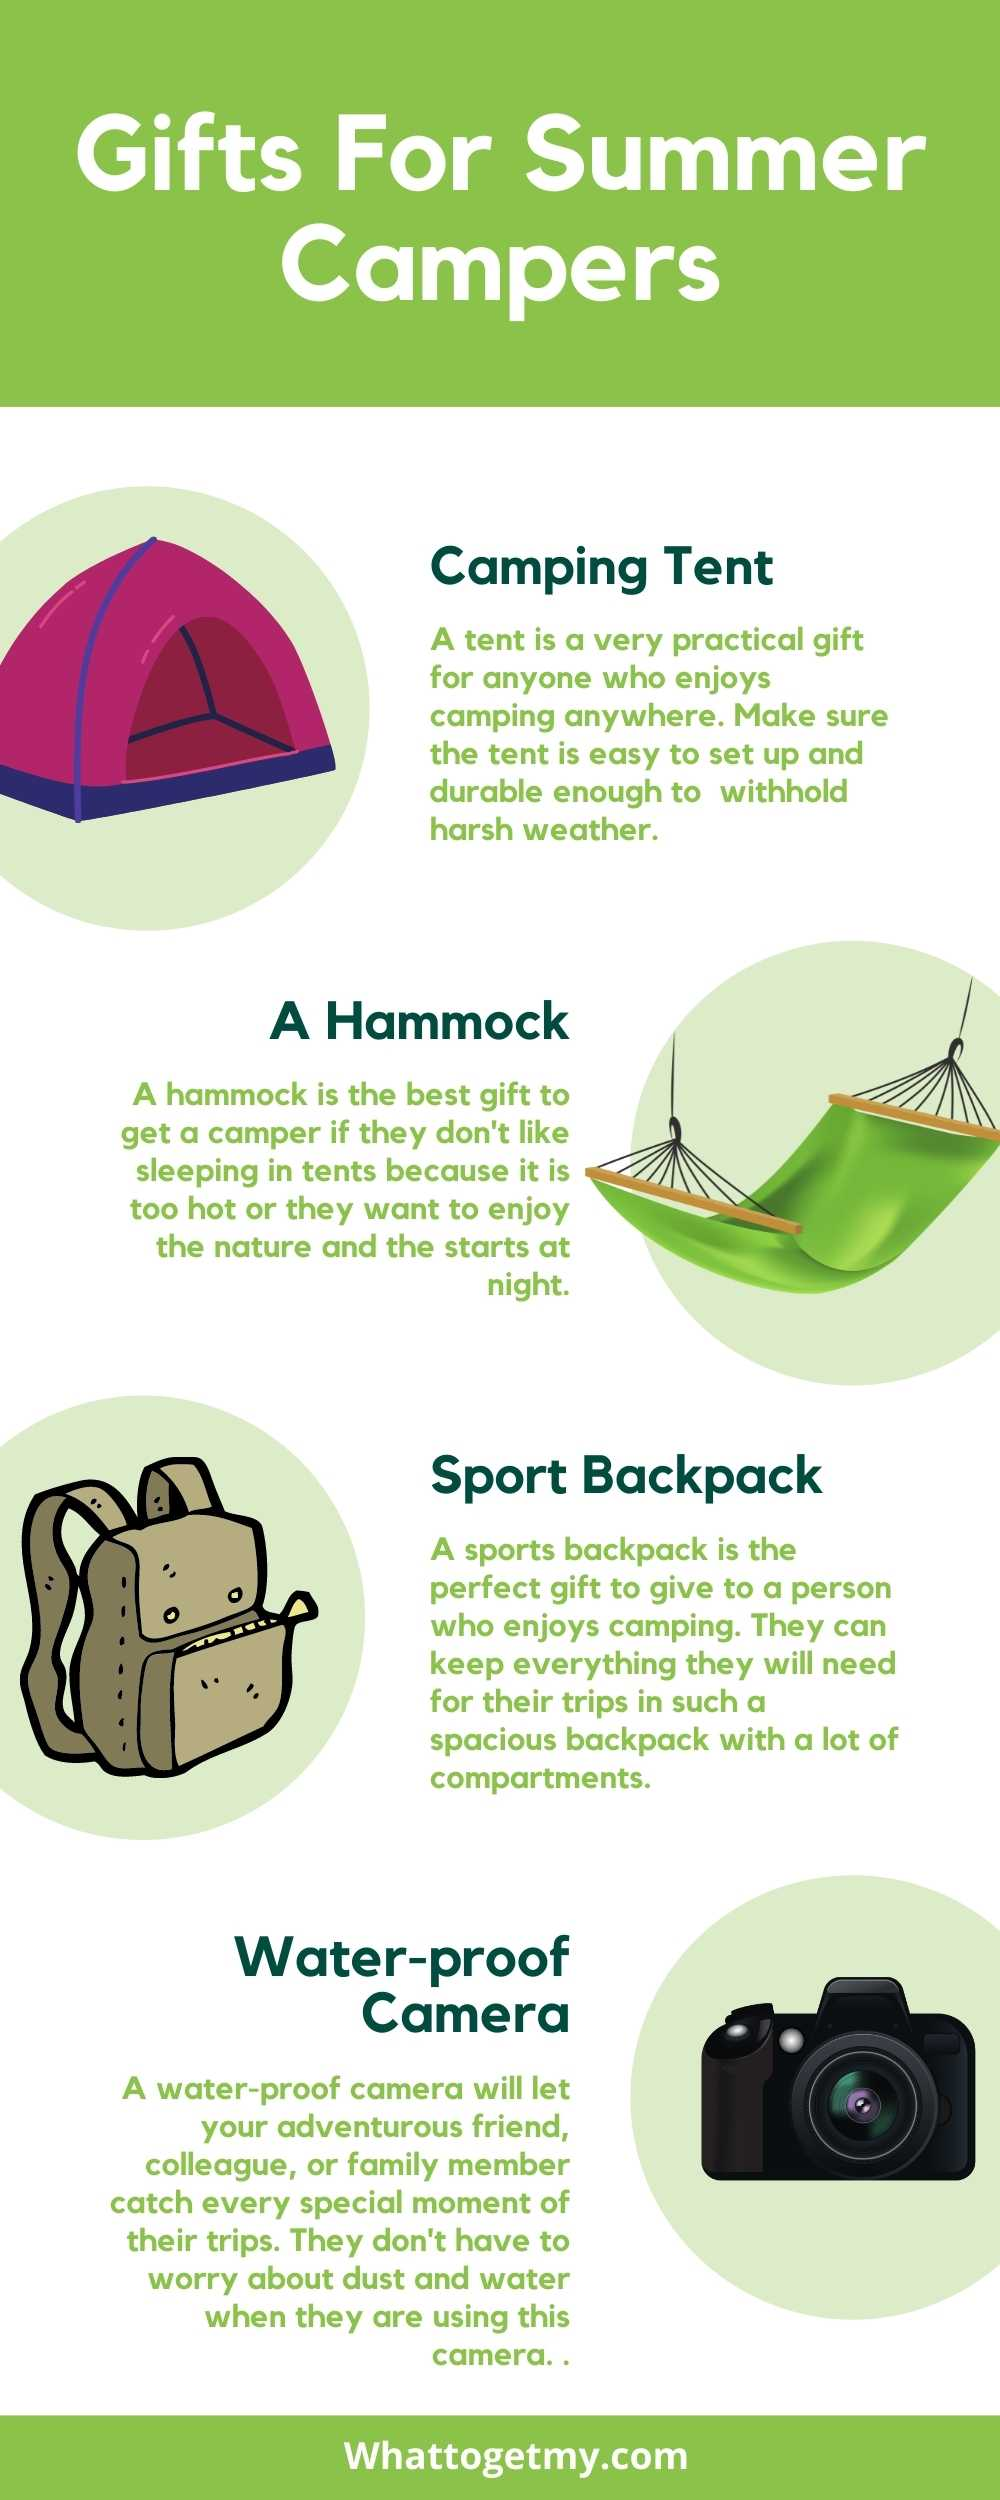 Gifts For Summer Campers